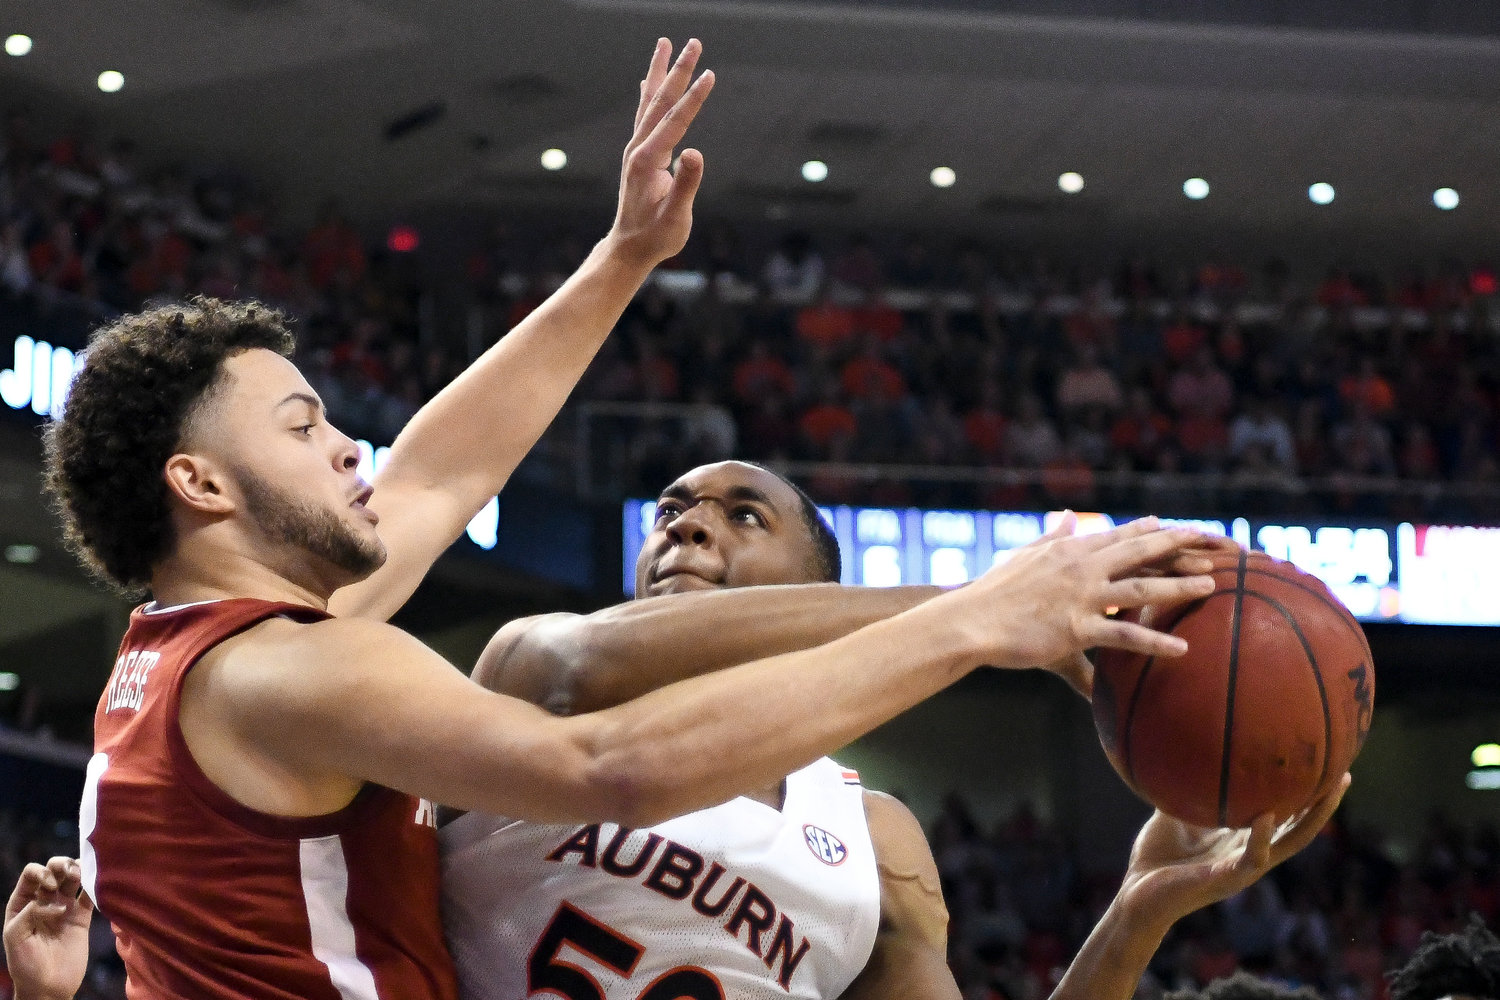 Auburn center Austin Wiley (50) shoots over Alabama forward Alex Reese (3) during their game Wednesday at Auburn Arena. Wiley had 18 points, 17 rebounds and five blocks in Auburn's 95-91 overtime win.